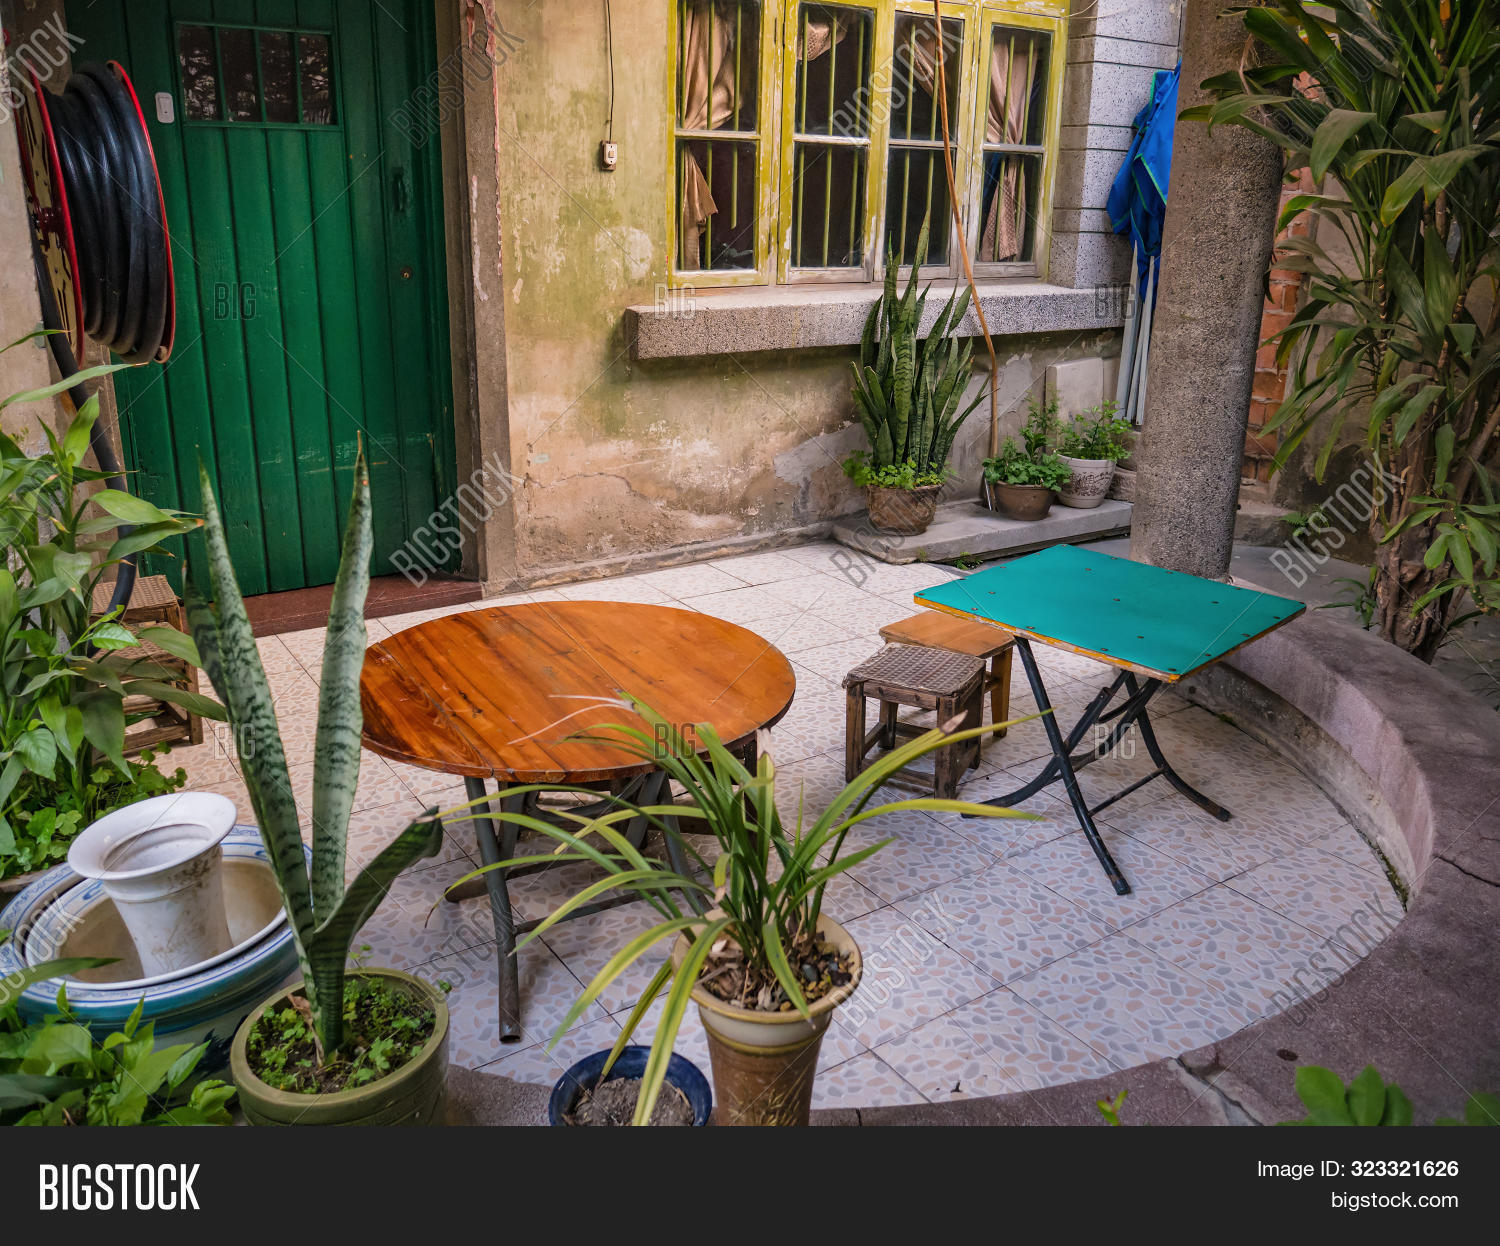 Relax Small Wooden Image Photo Free Trial Bigstock